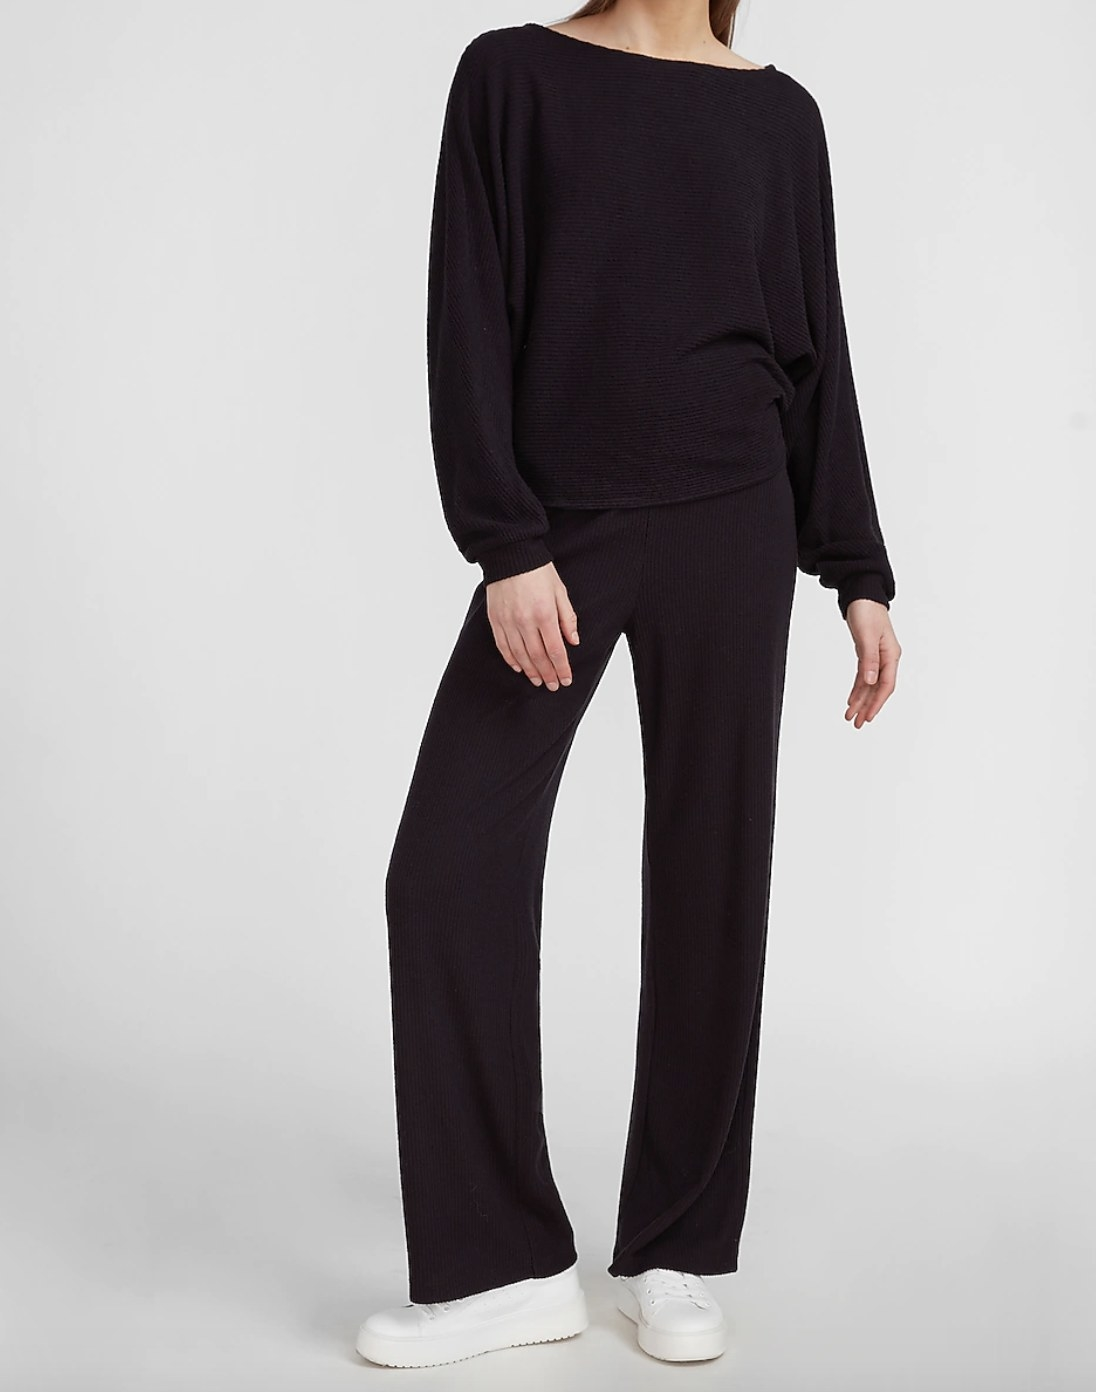 A high-waisted ribbed wide-leg pant in black